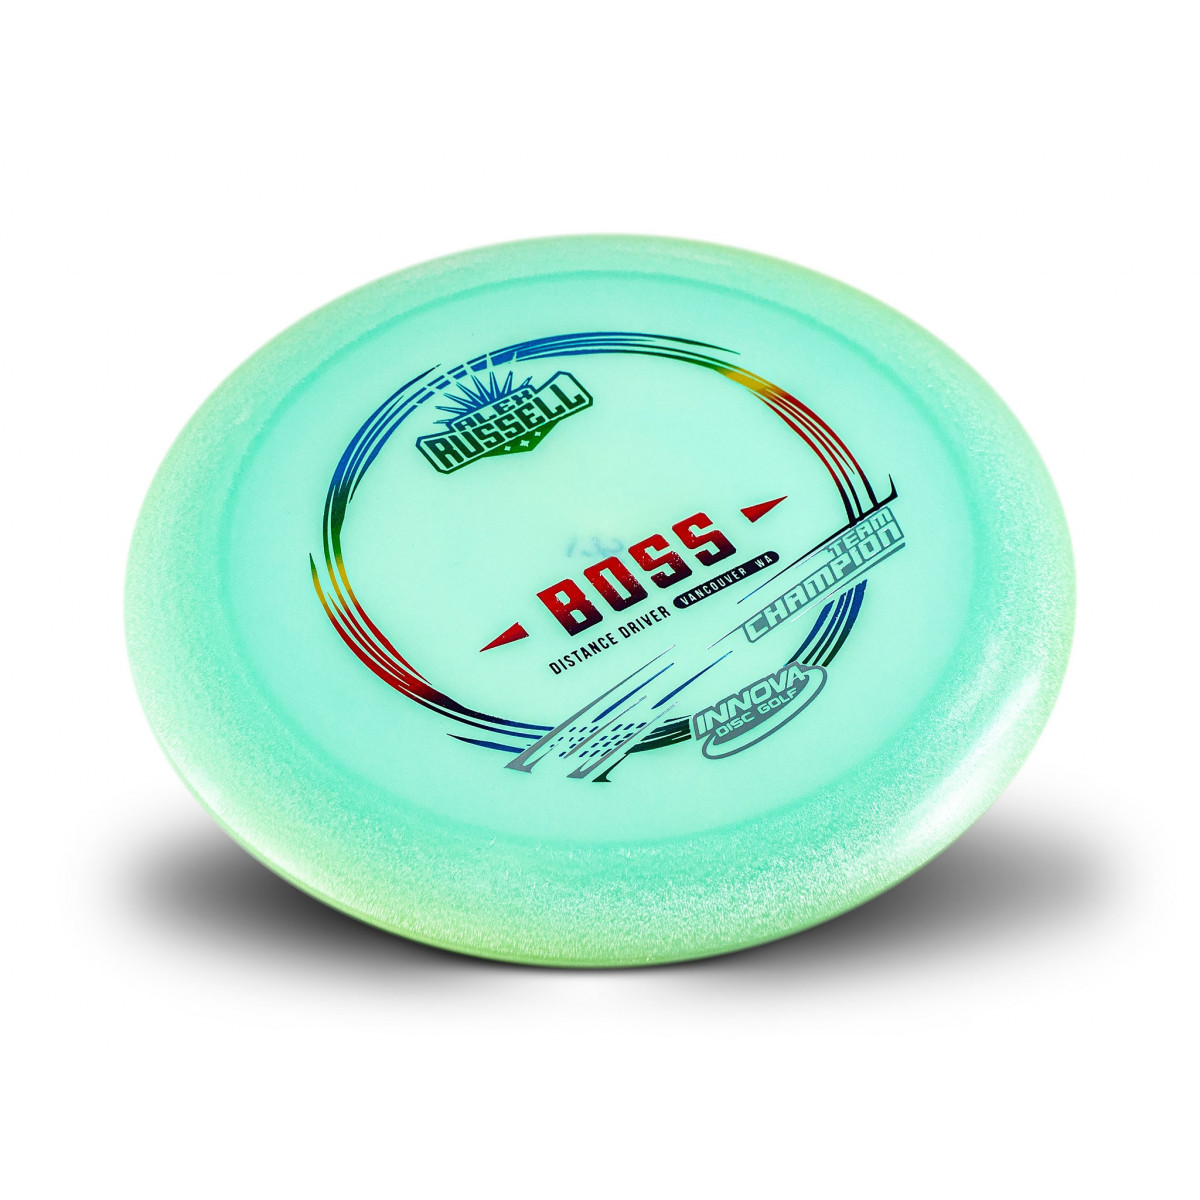 Innova Champion Color Glow Boss Alex Russell Tour Series